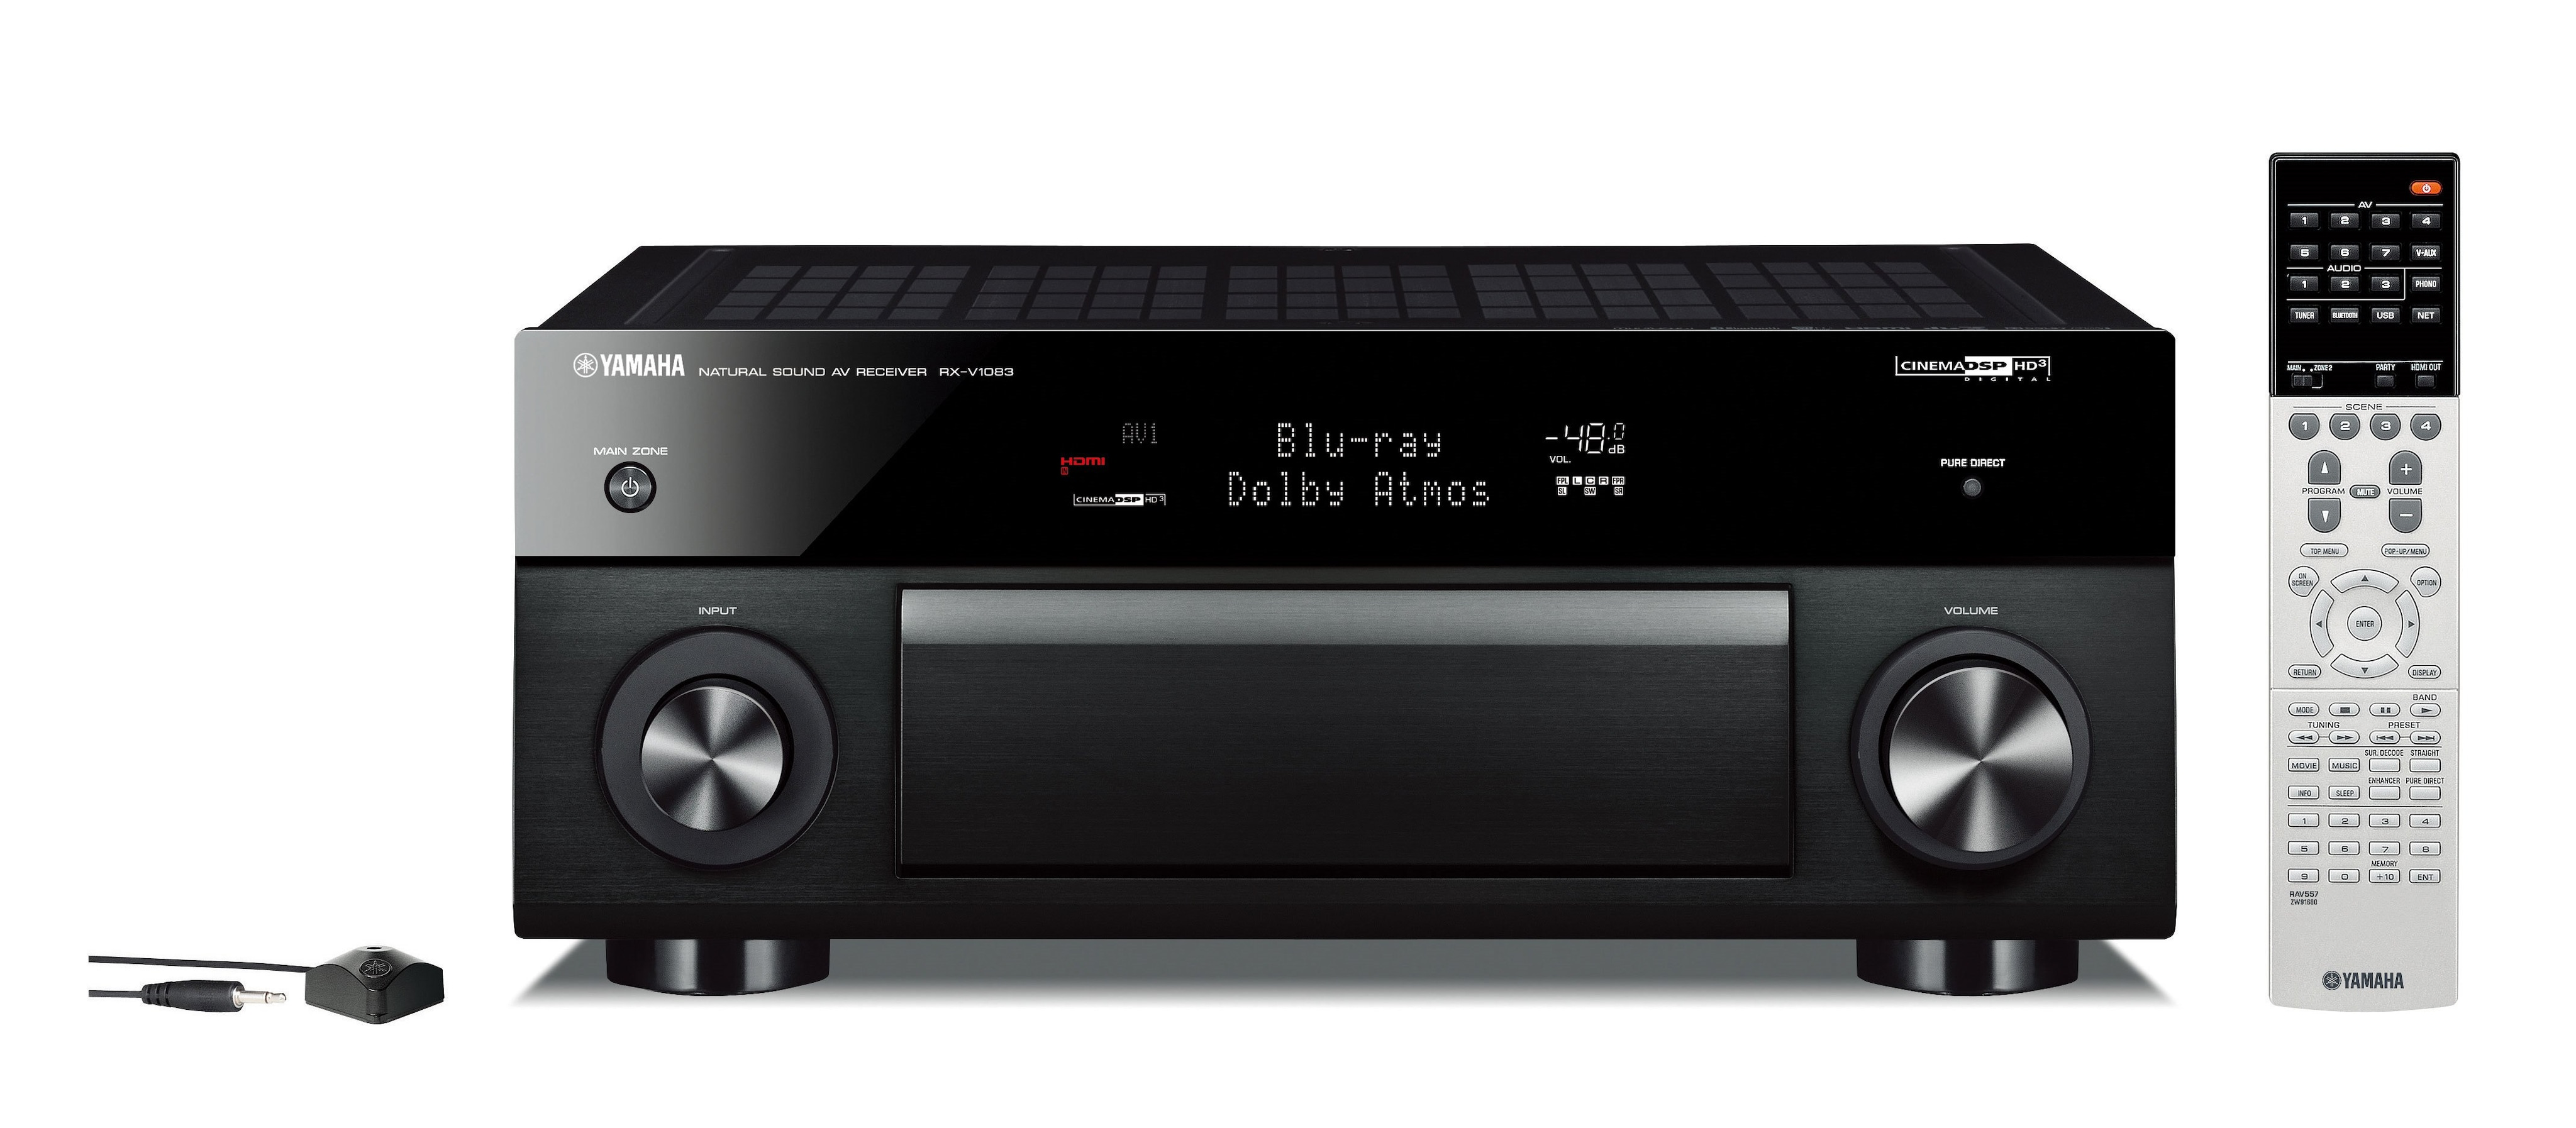 rx v1083 downloads av receivers audio visual. Black Bedroom Furniture Sets. Home Design Ideas